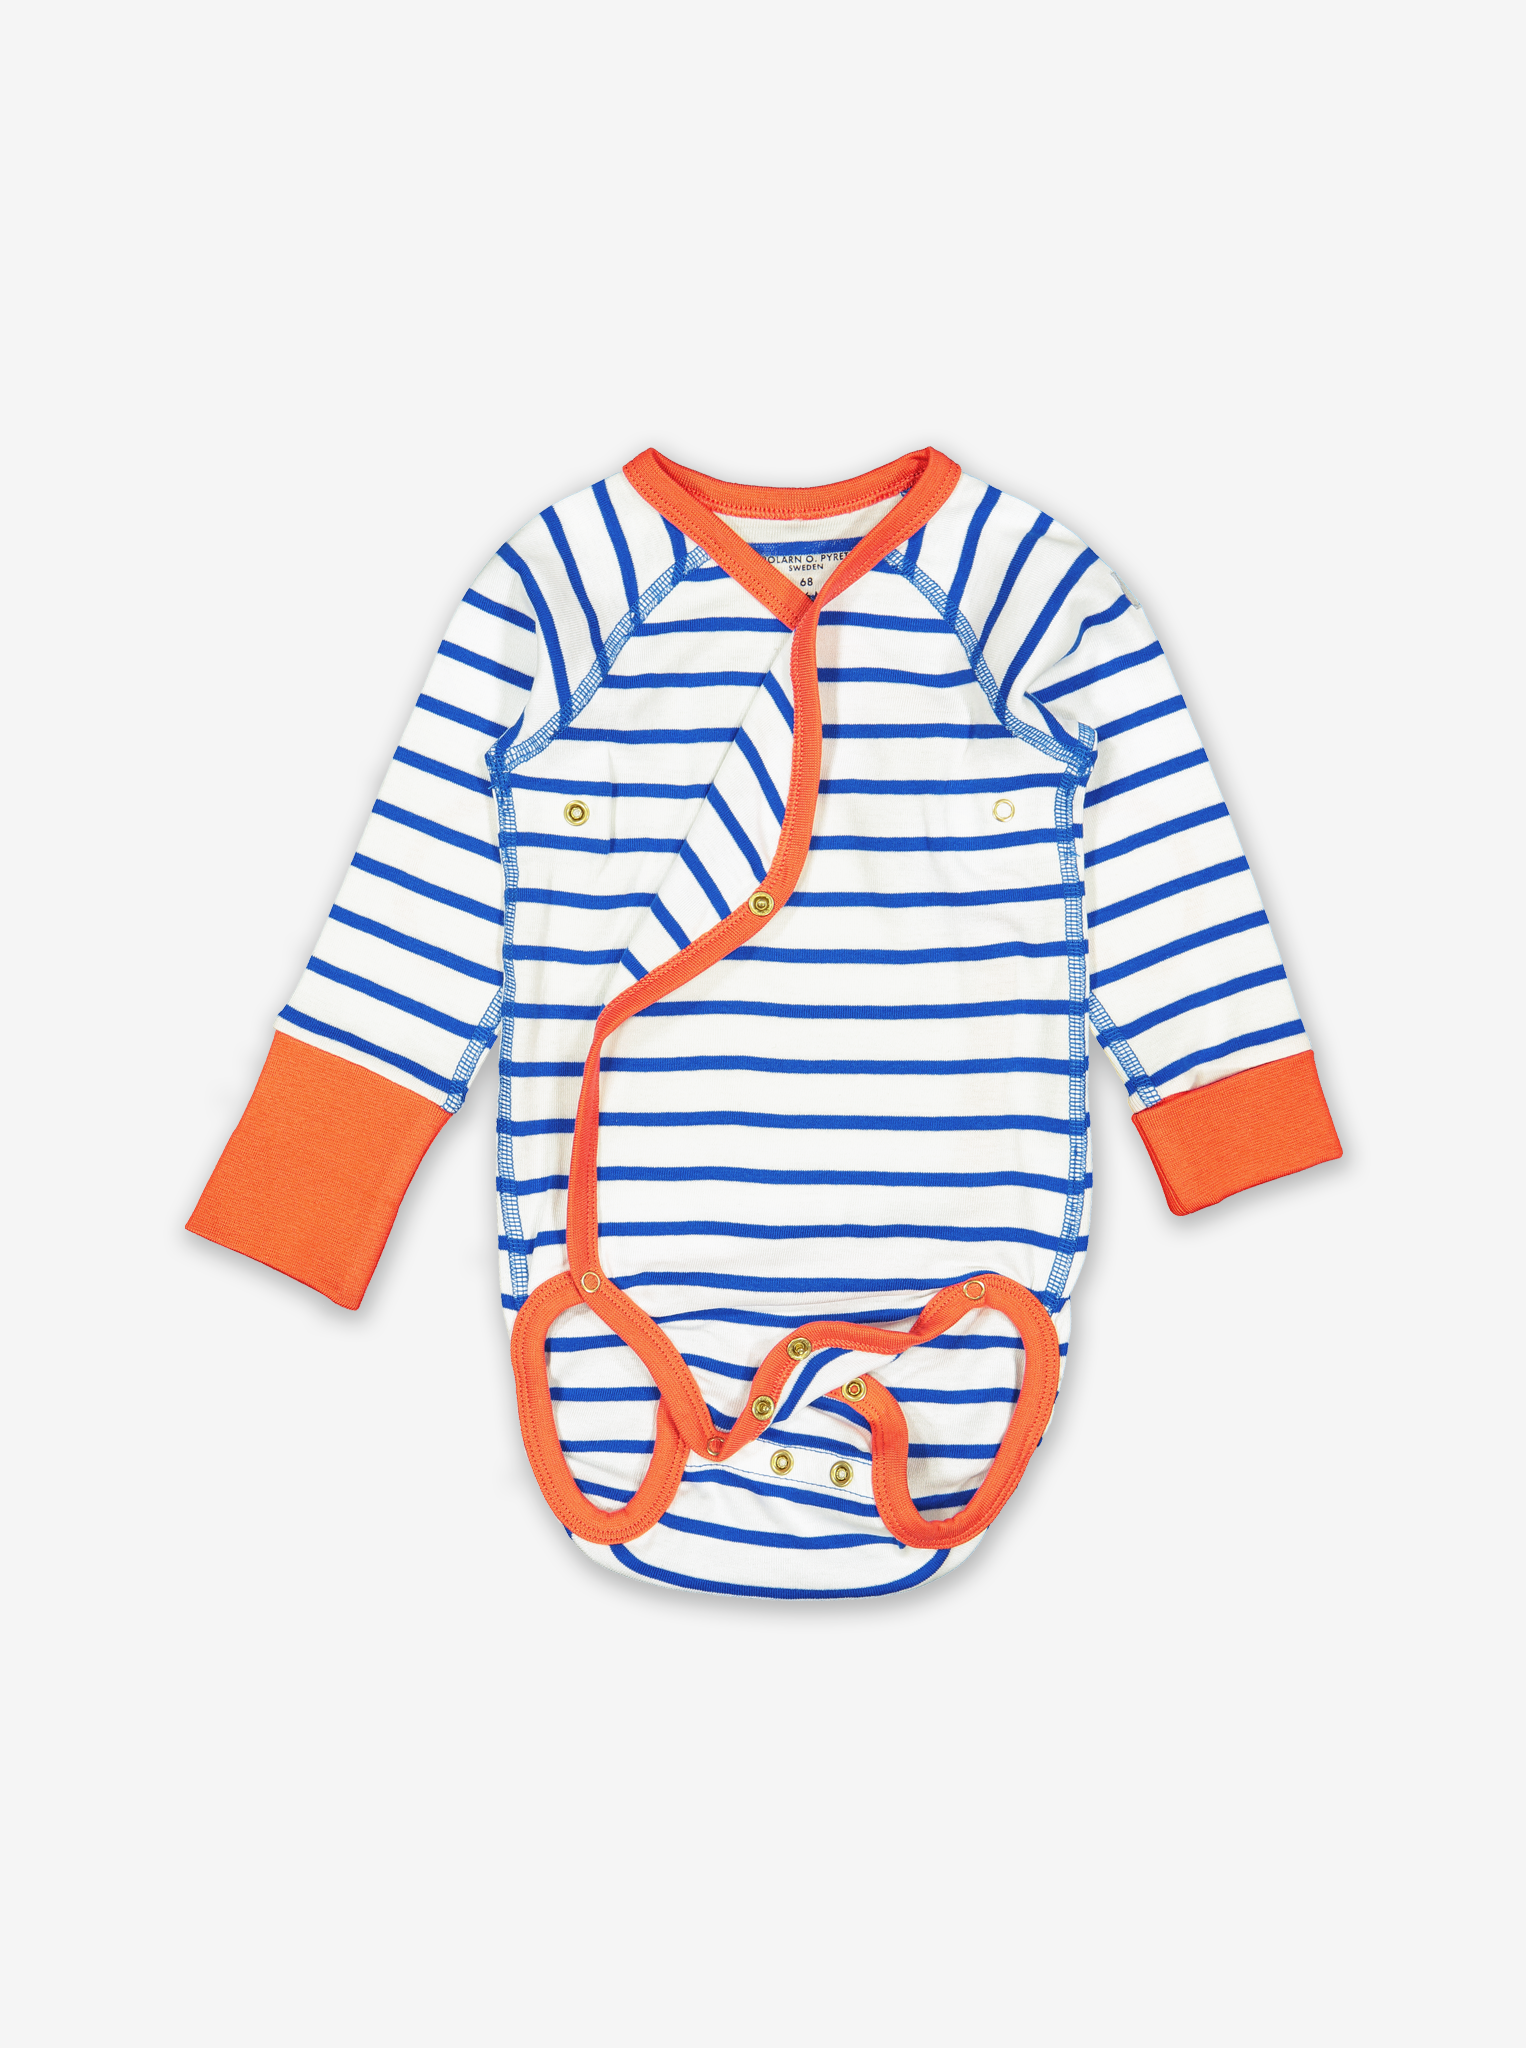 Striped Baby Top-Unisex-0-1y-White